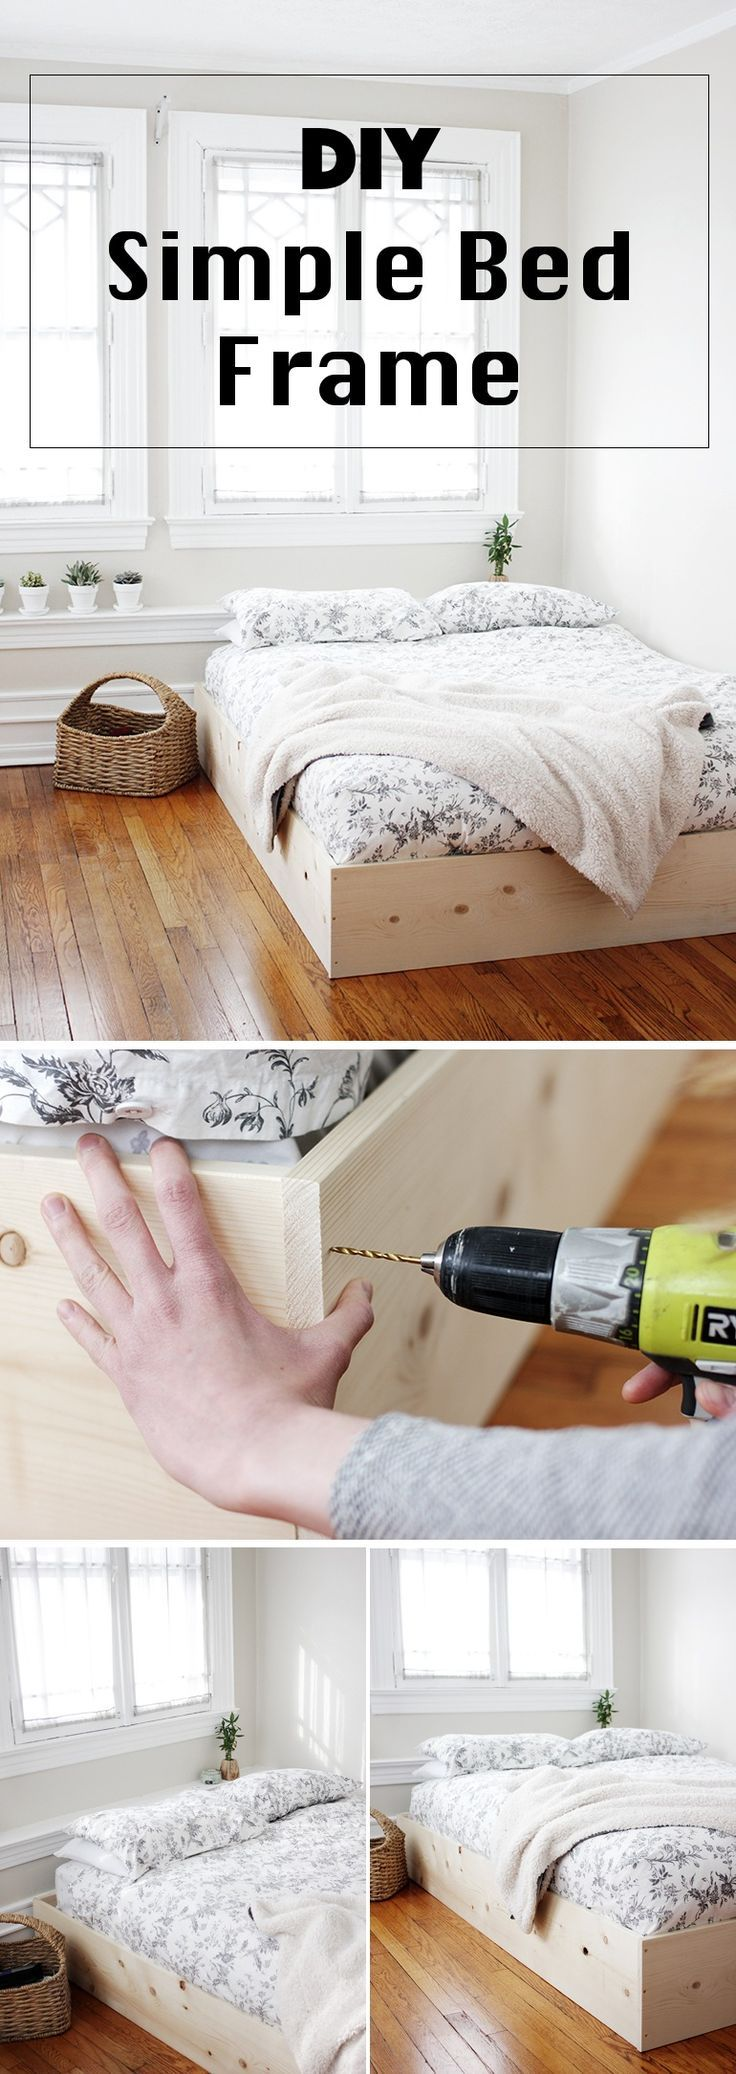 Single pallet bed frame - 25 Easy Diy Bed Frame Projects To Upgrade Your Bedroom